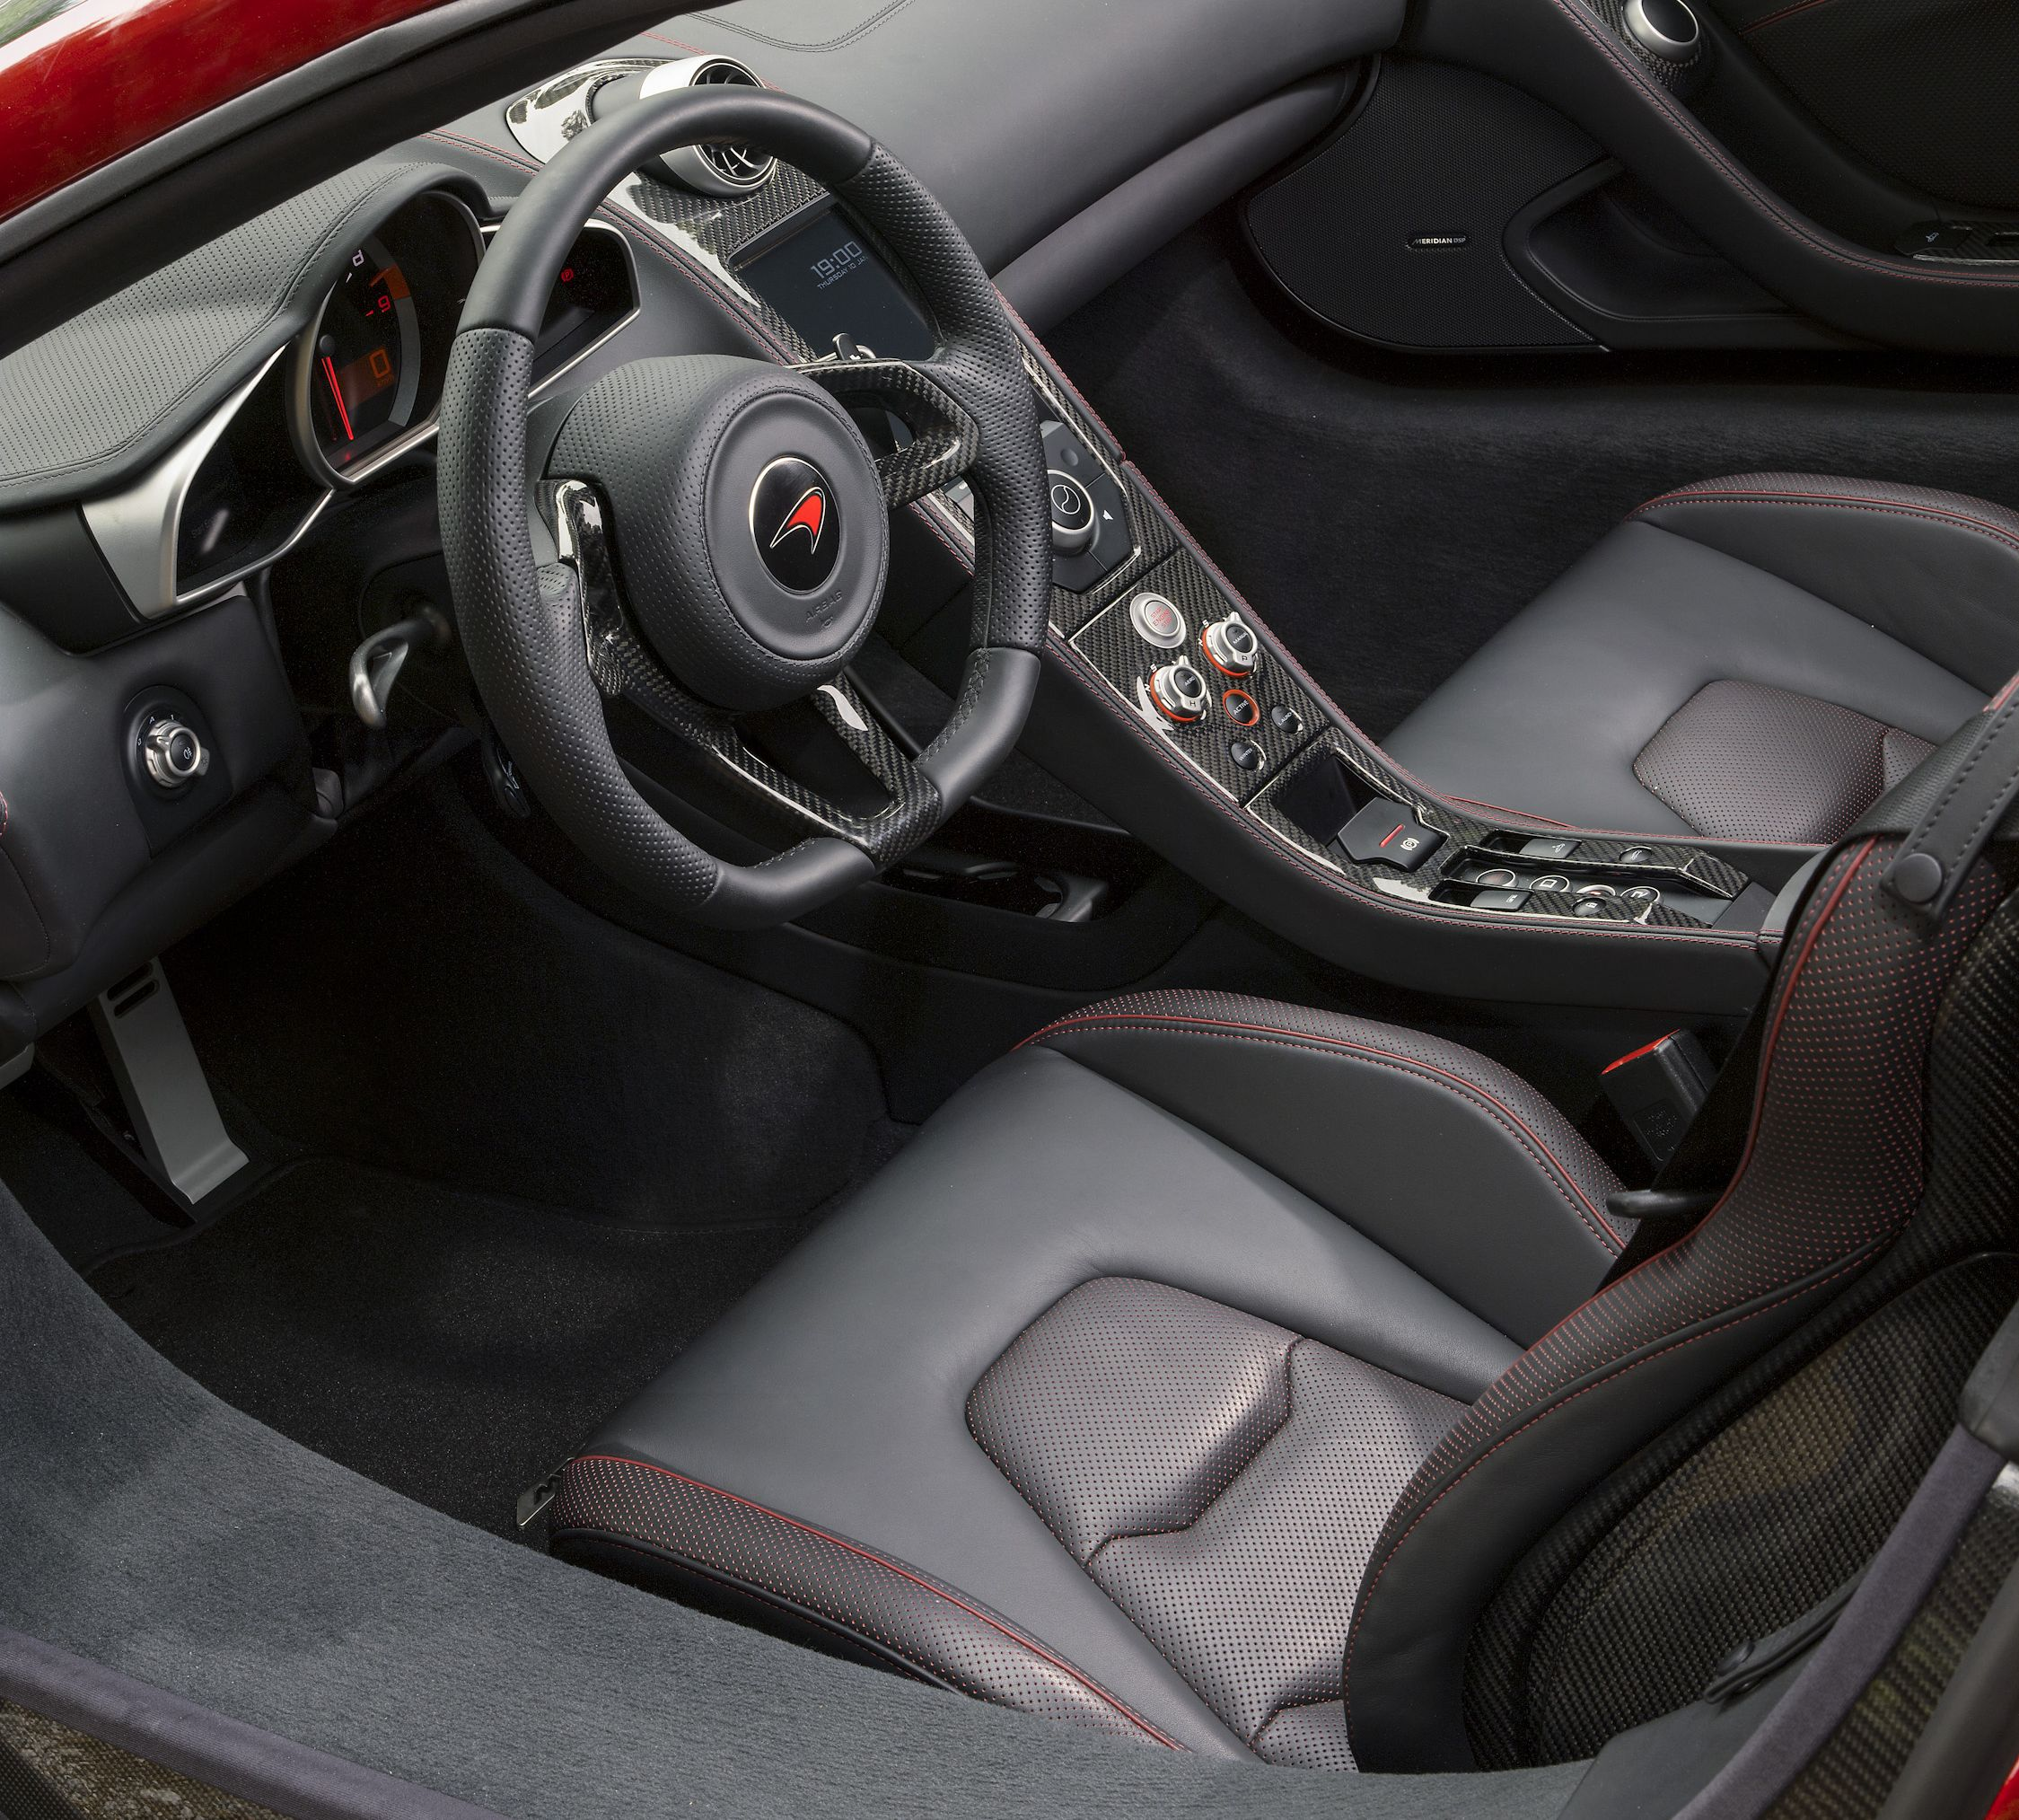 McLaren MP4-12C Spider Interior